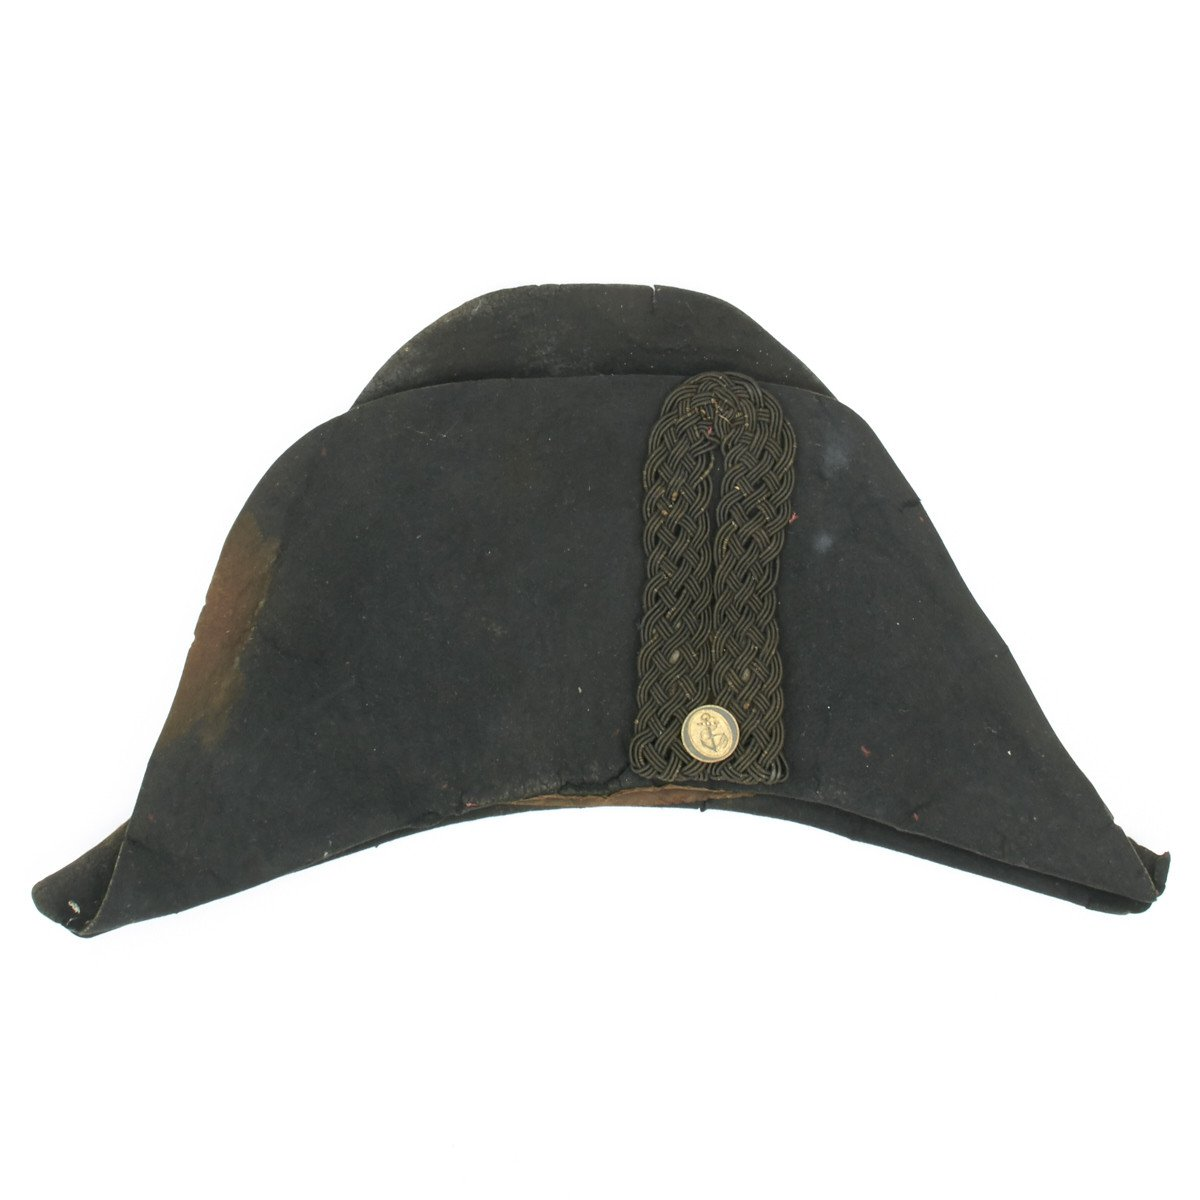 550538687a0 Original 18th Century British Royal Naval Officer Collection- Bicorn Hat  with Will Dated 1783